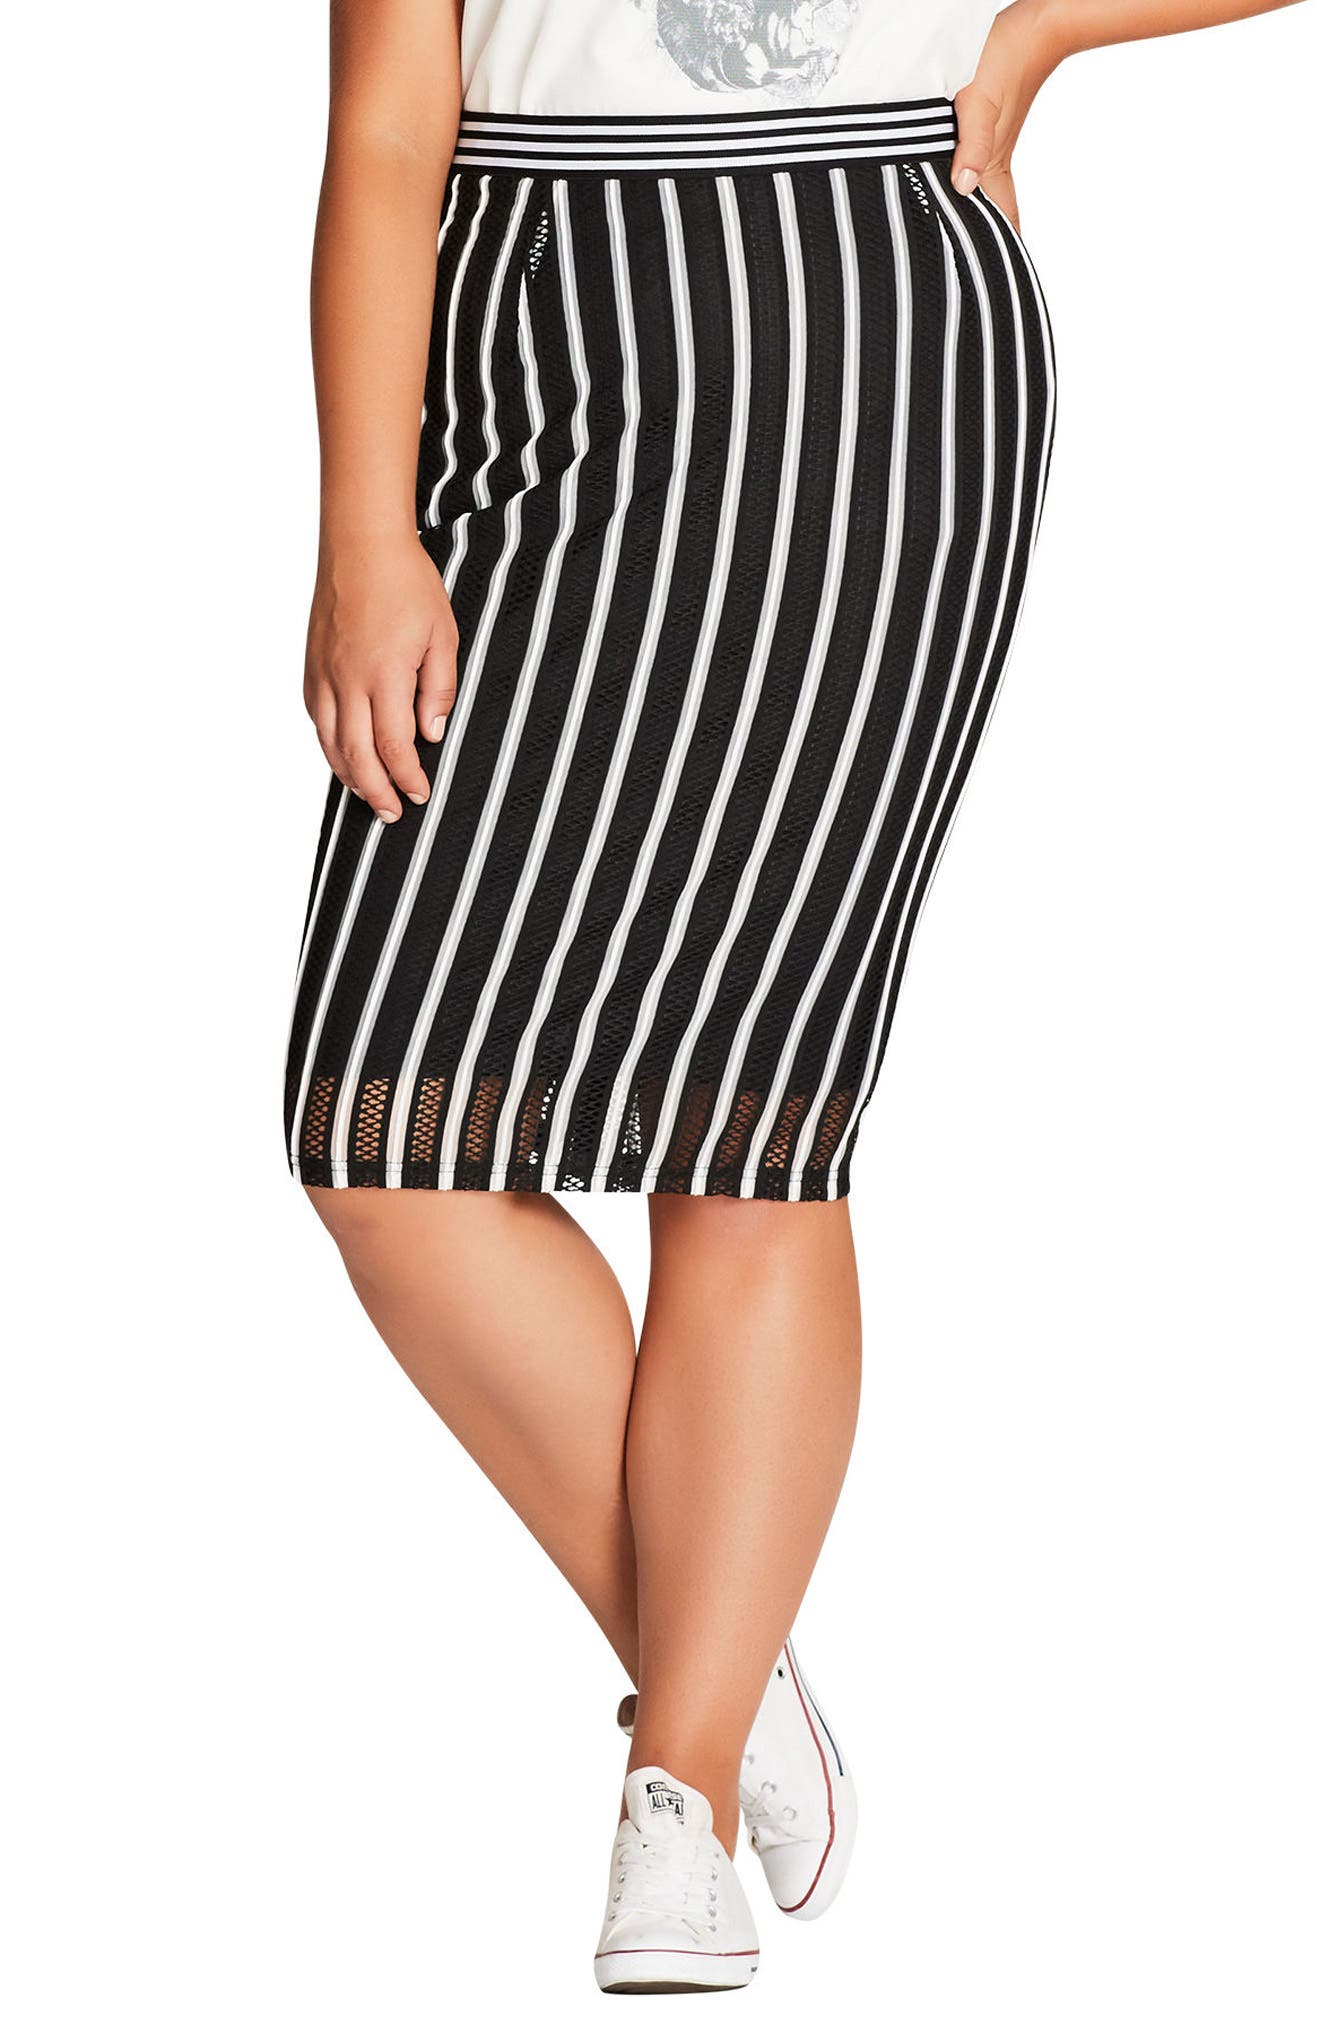 City Chic Game Day Skirt